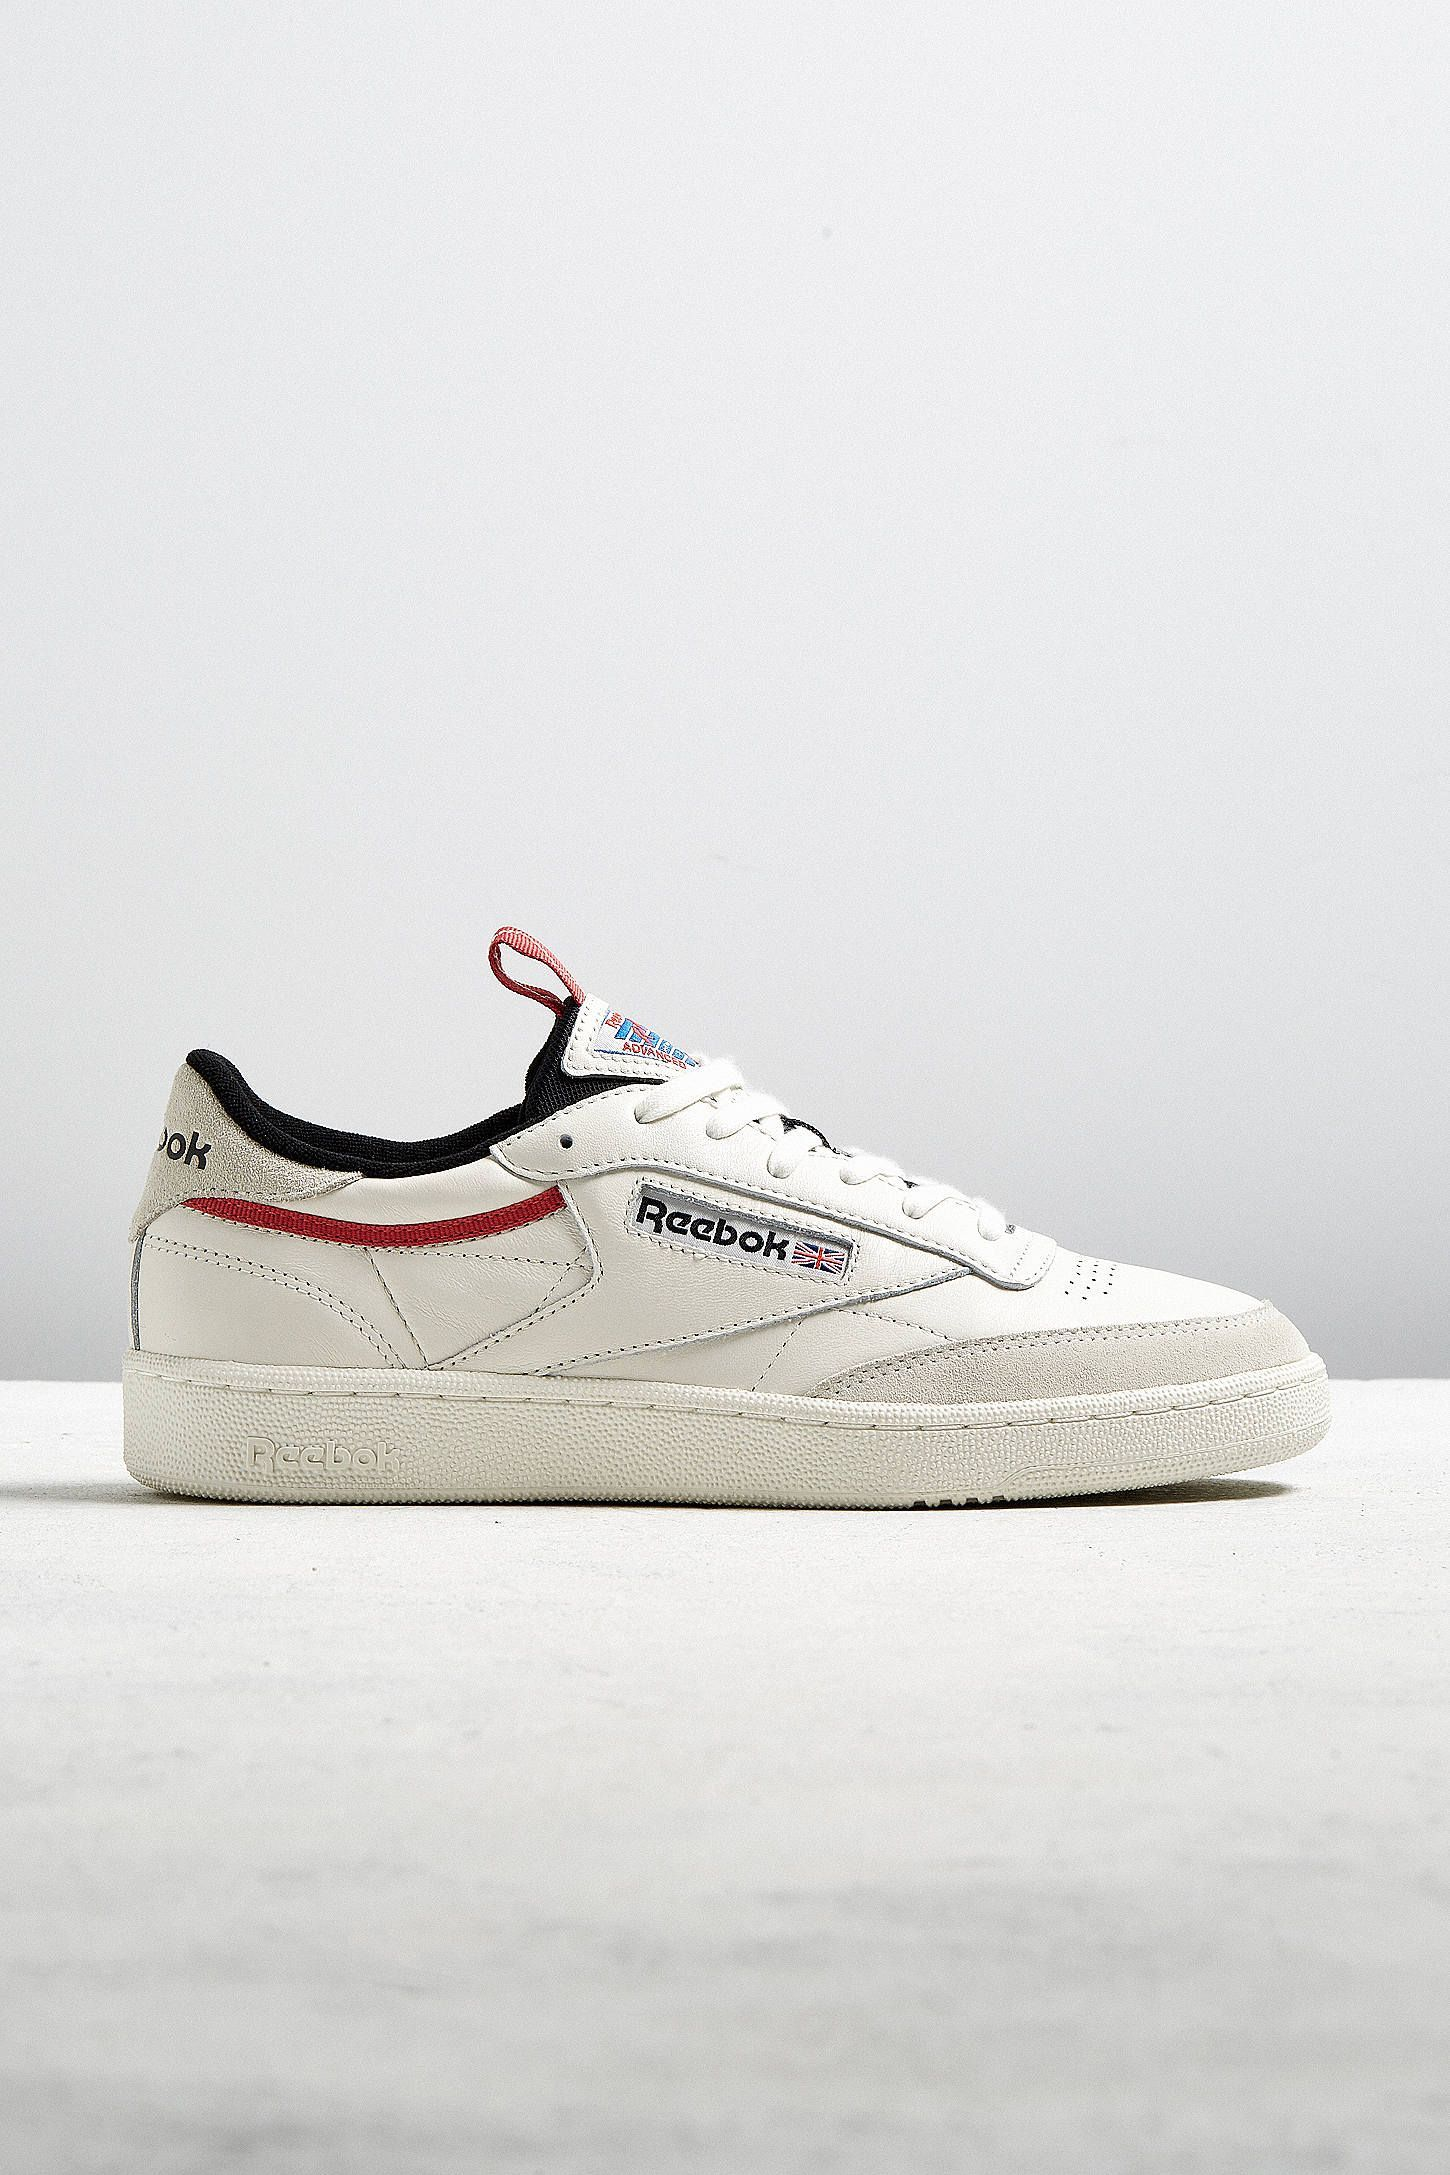 3ab3d346e34e Shop Reebok Club C85 RAD Sneaker at Urban Outfitters today. We carry all  the latest styles